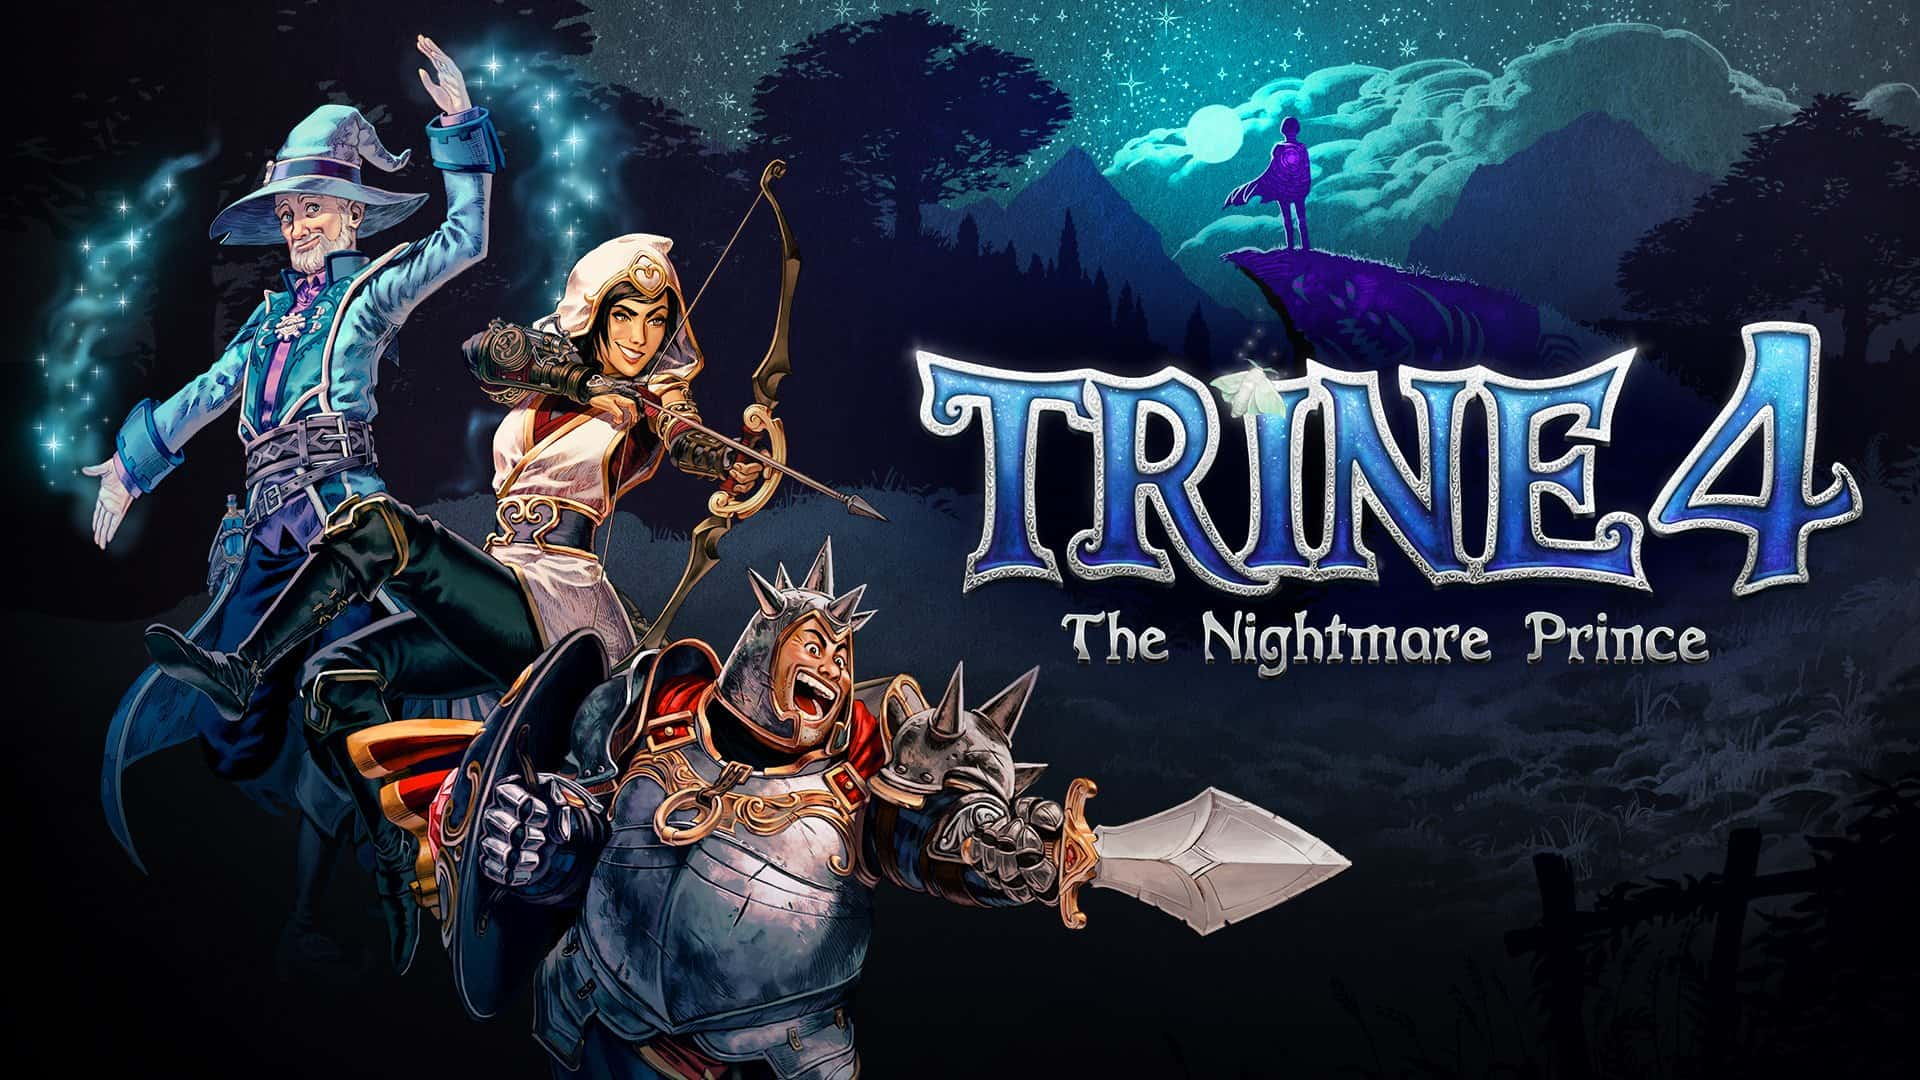 Trine 4: The Nightmare Prince Arrives October 8th, New Gameplay Trailer Reveals Gorgeous New Footage